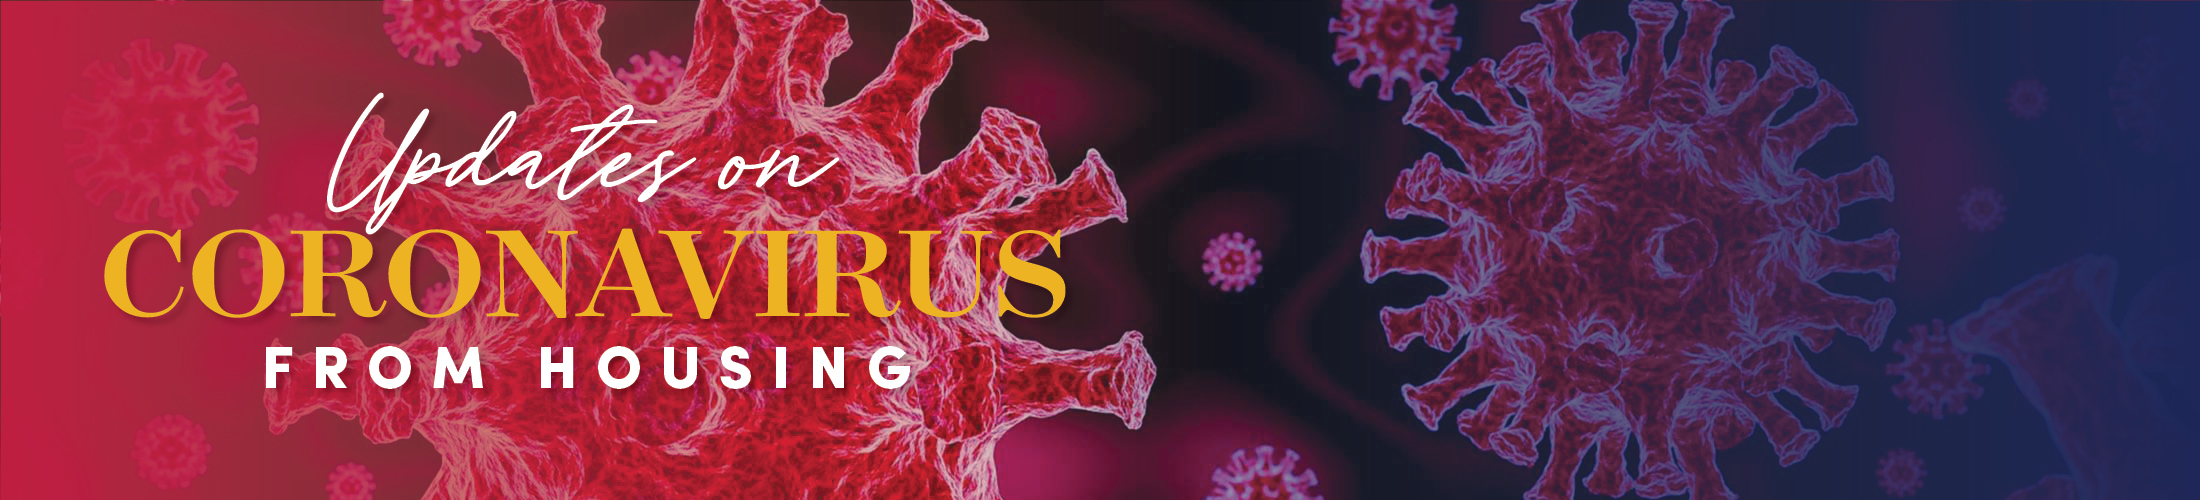 Updates on Coronavirus from Housing